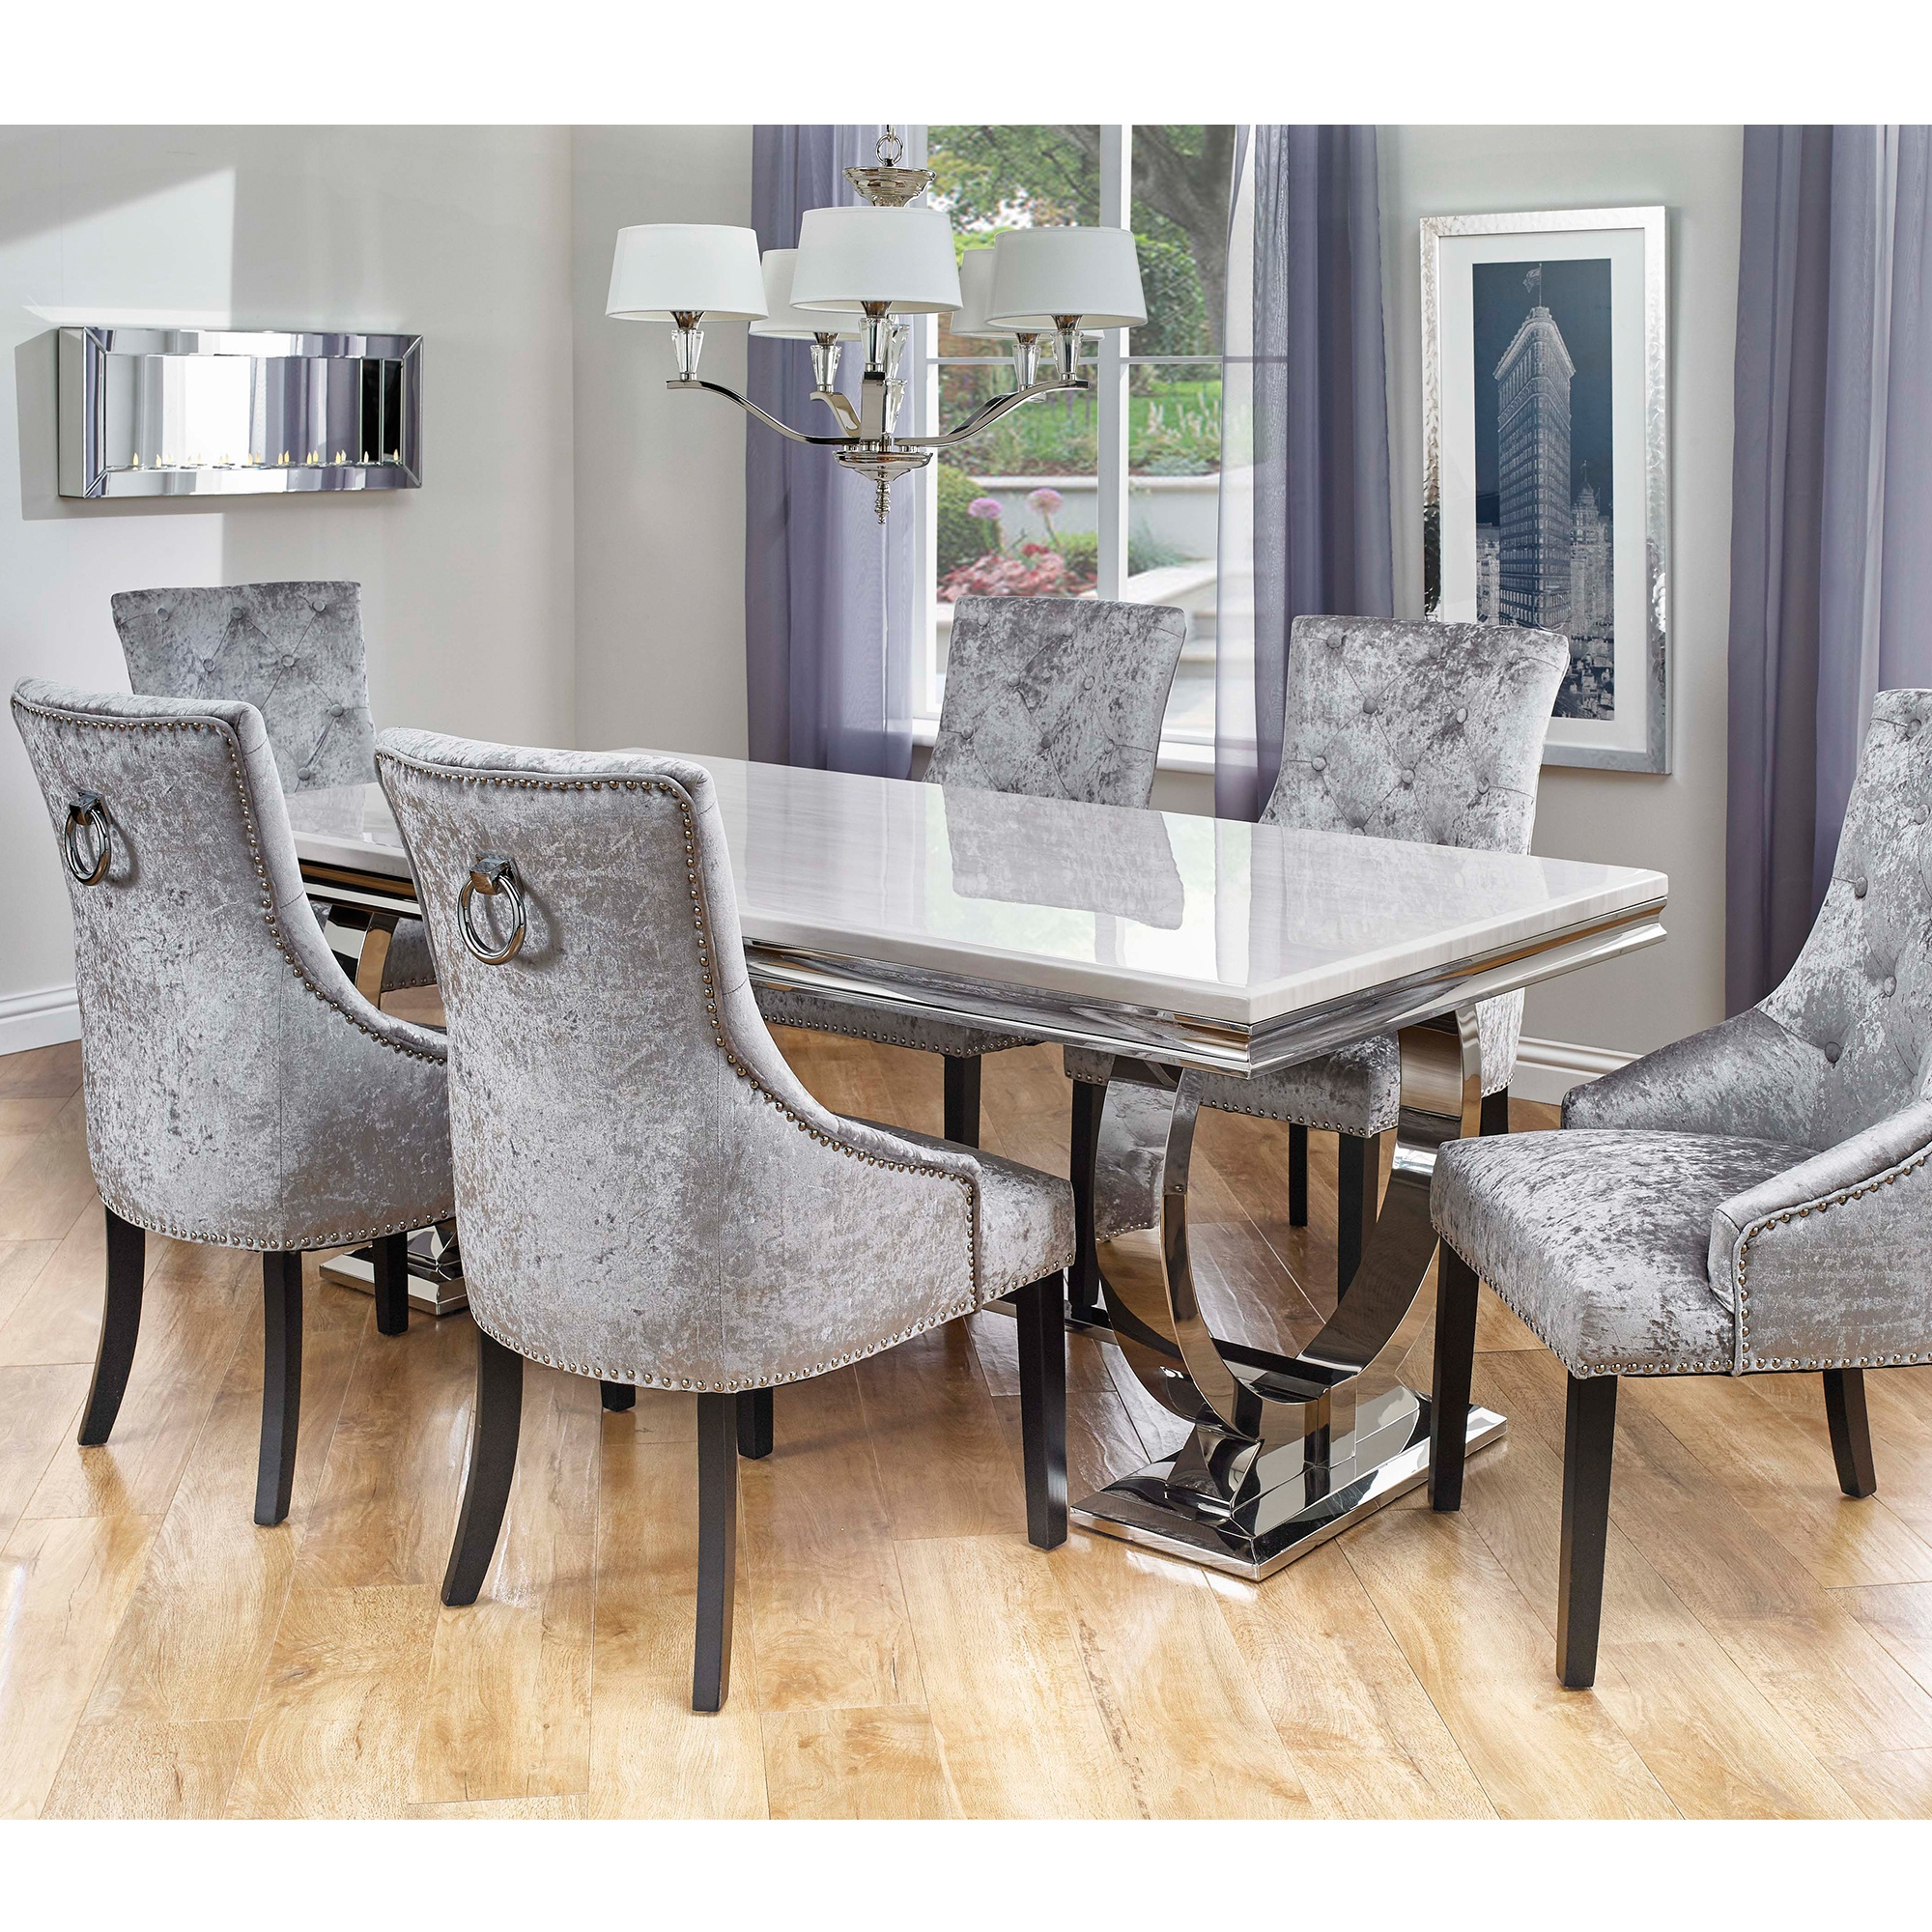 Cookes Collection Valentina Dining Table And 6 Chairs